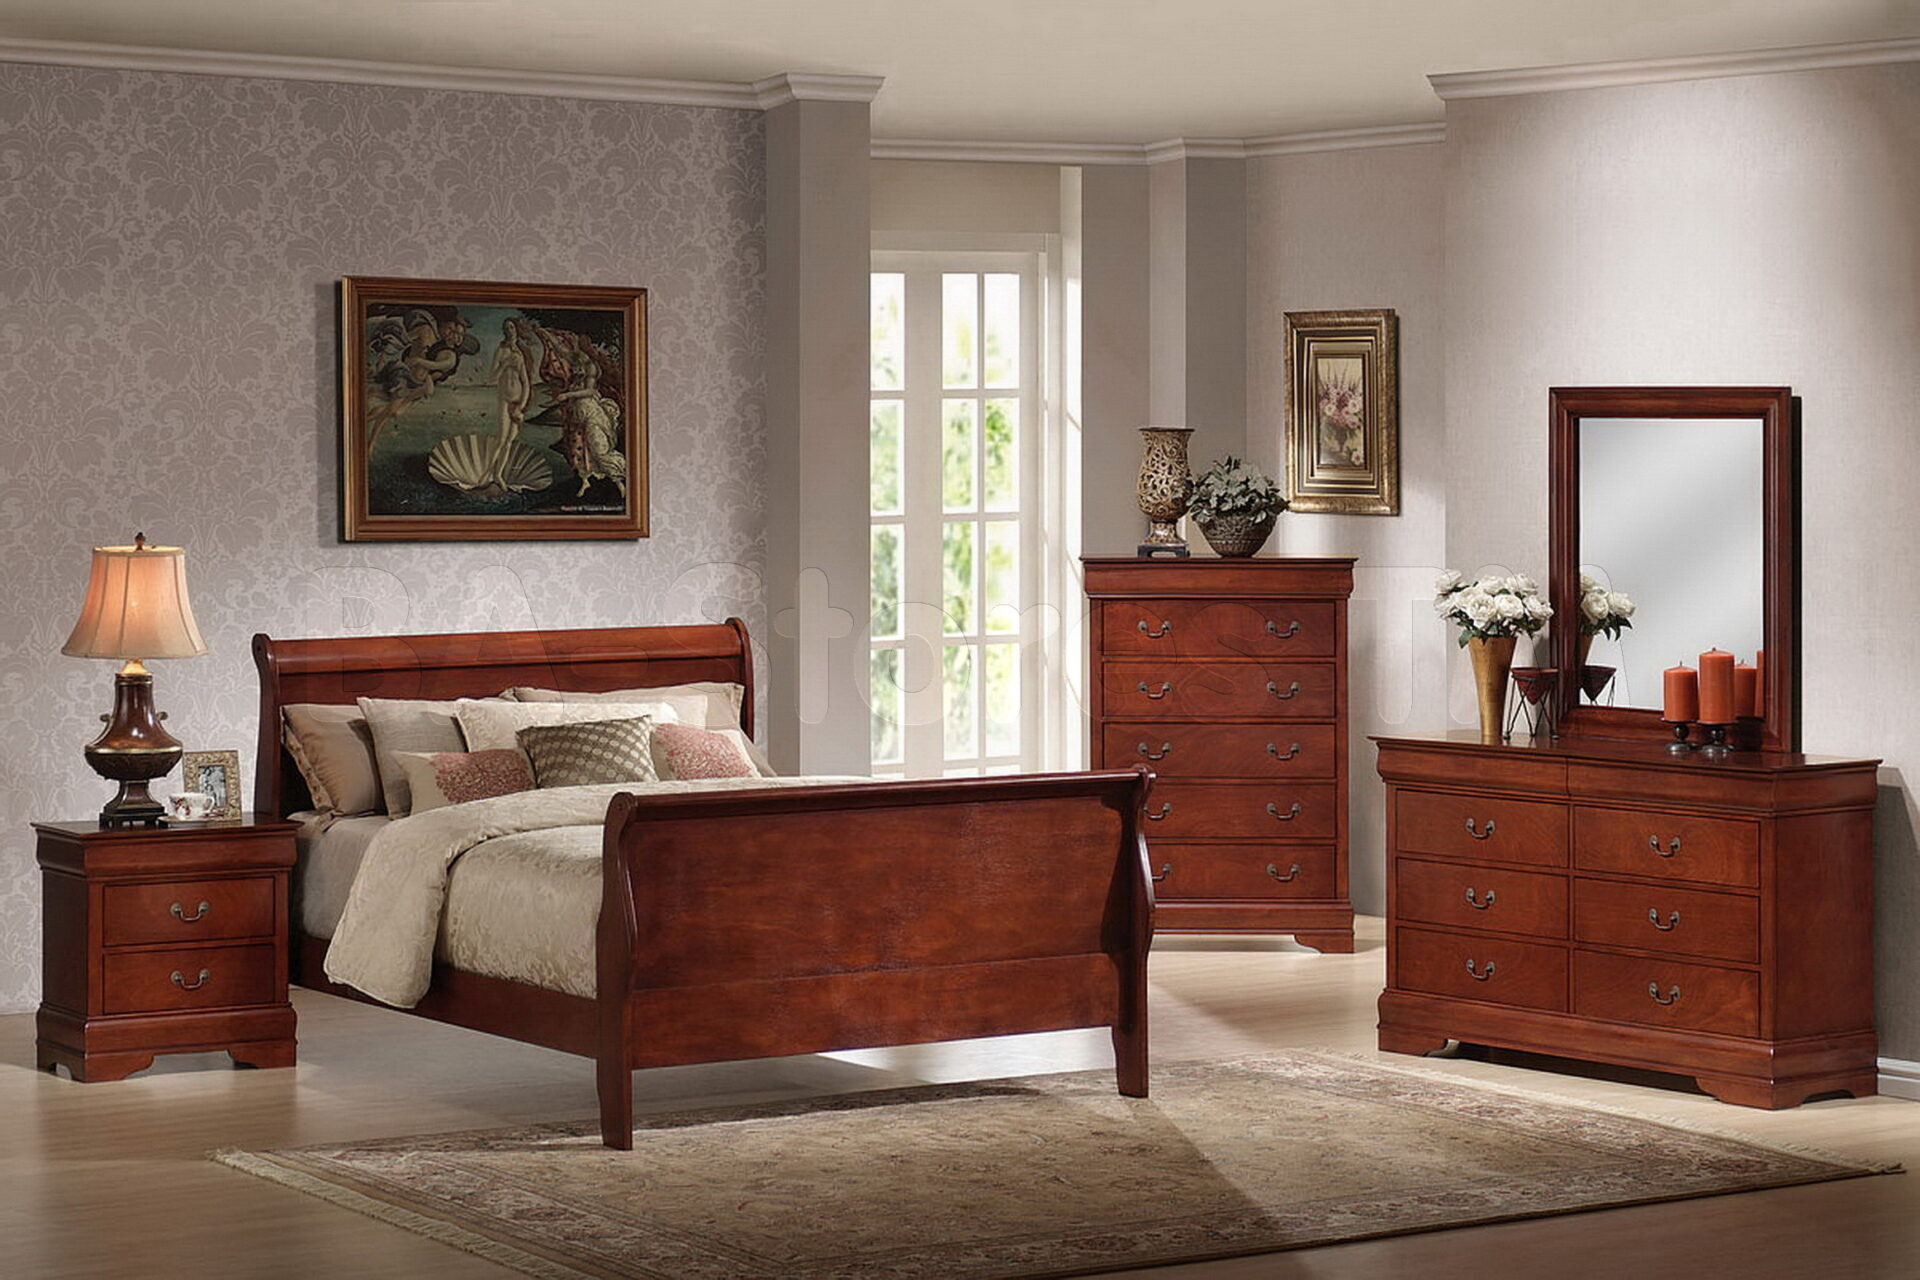 Cherry wood furniture bedroom decor ideas for Bedroom ideas dark wood